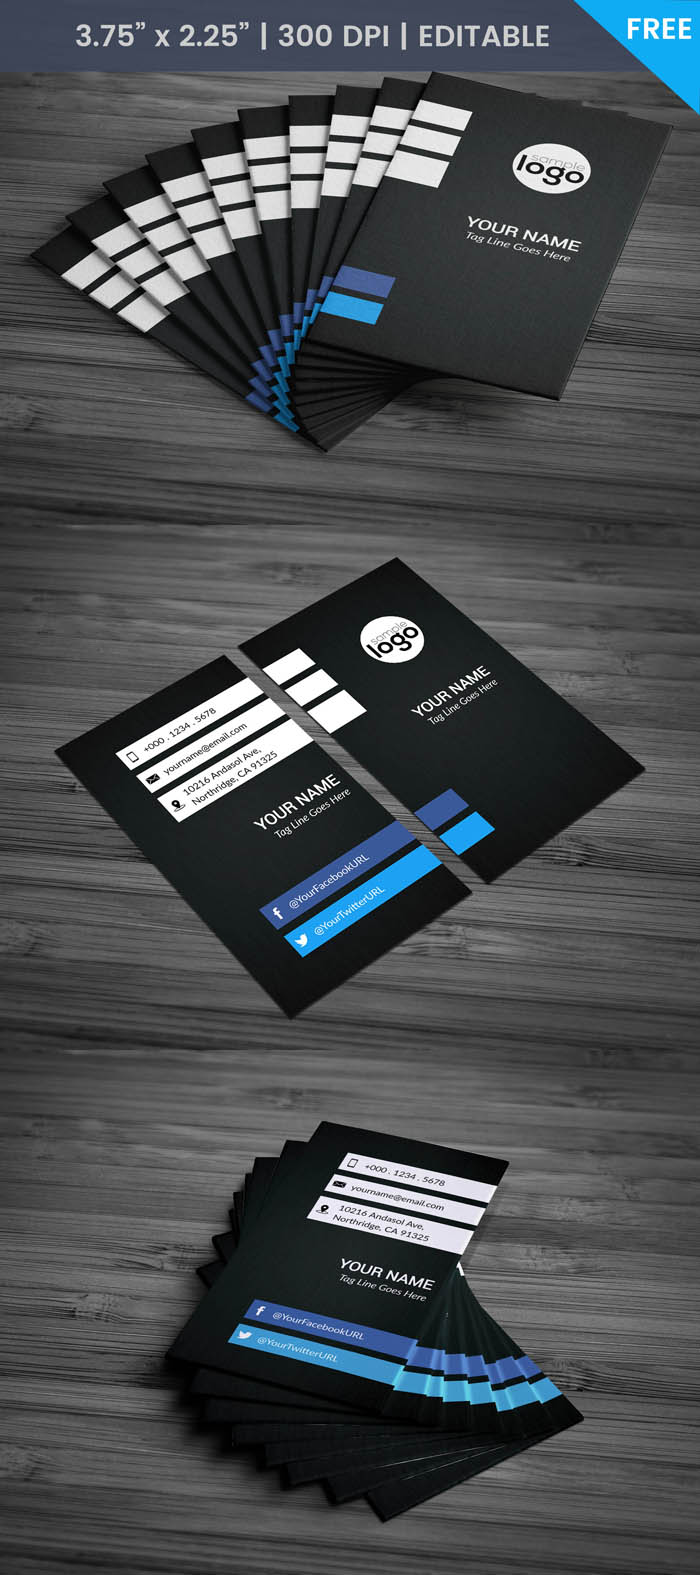 Free Freelance Business Card Template